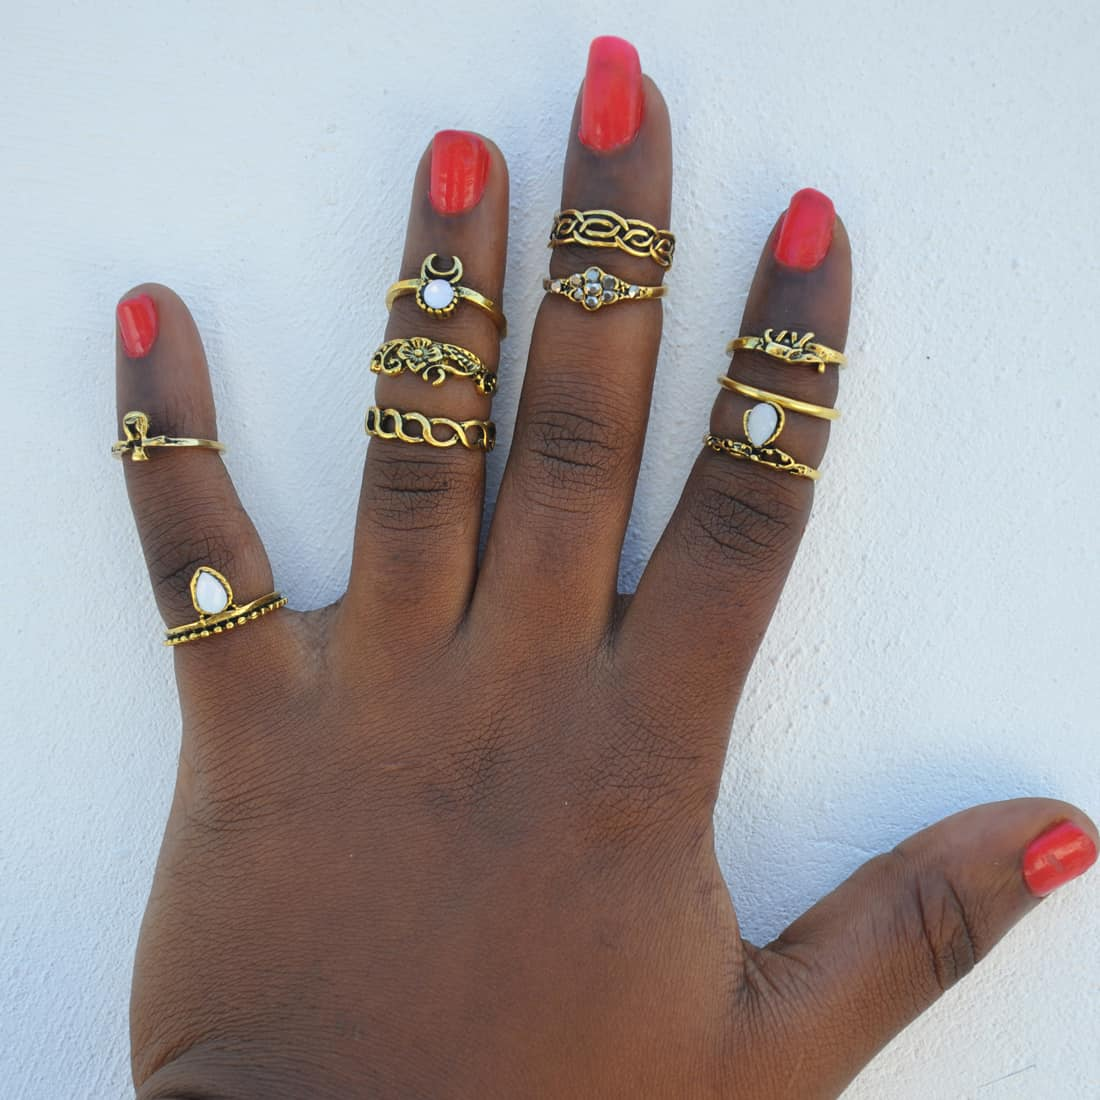 M0317 gold8 Jewelry Sets Rings maureens.com boutique